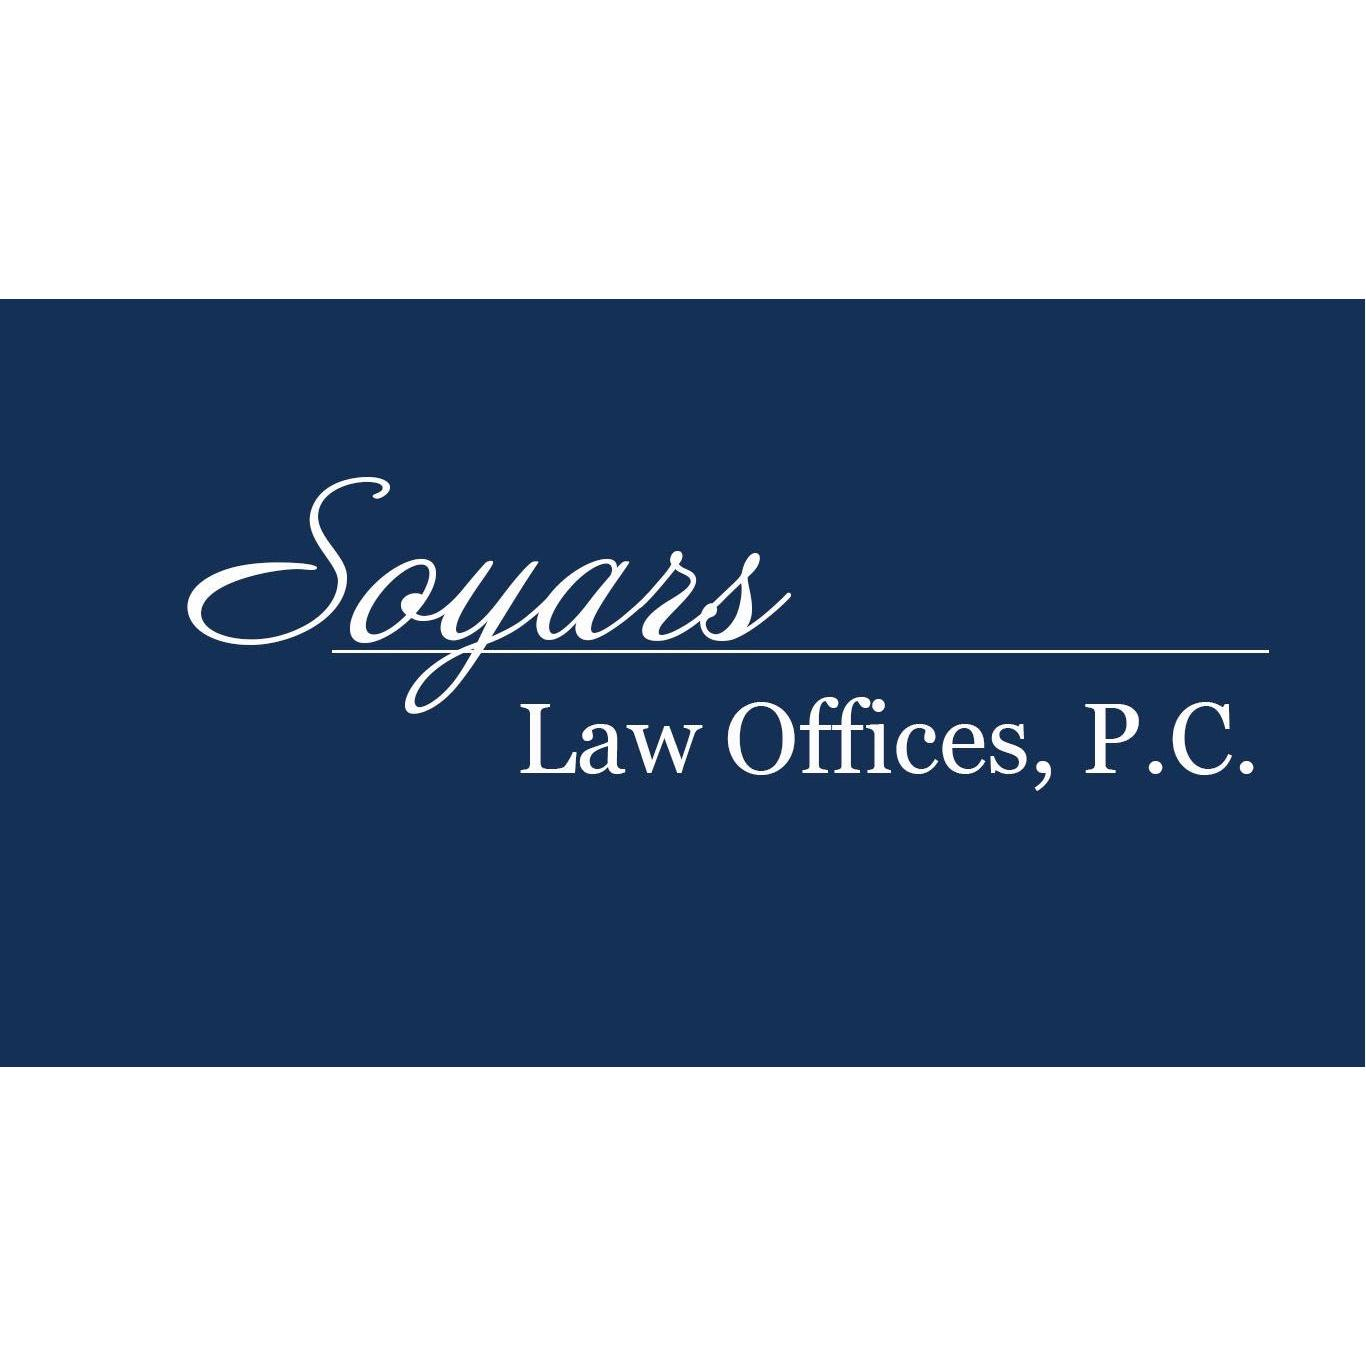 Soyars Law Offices, P.C.